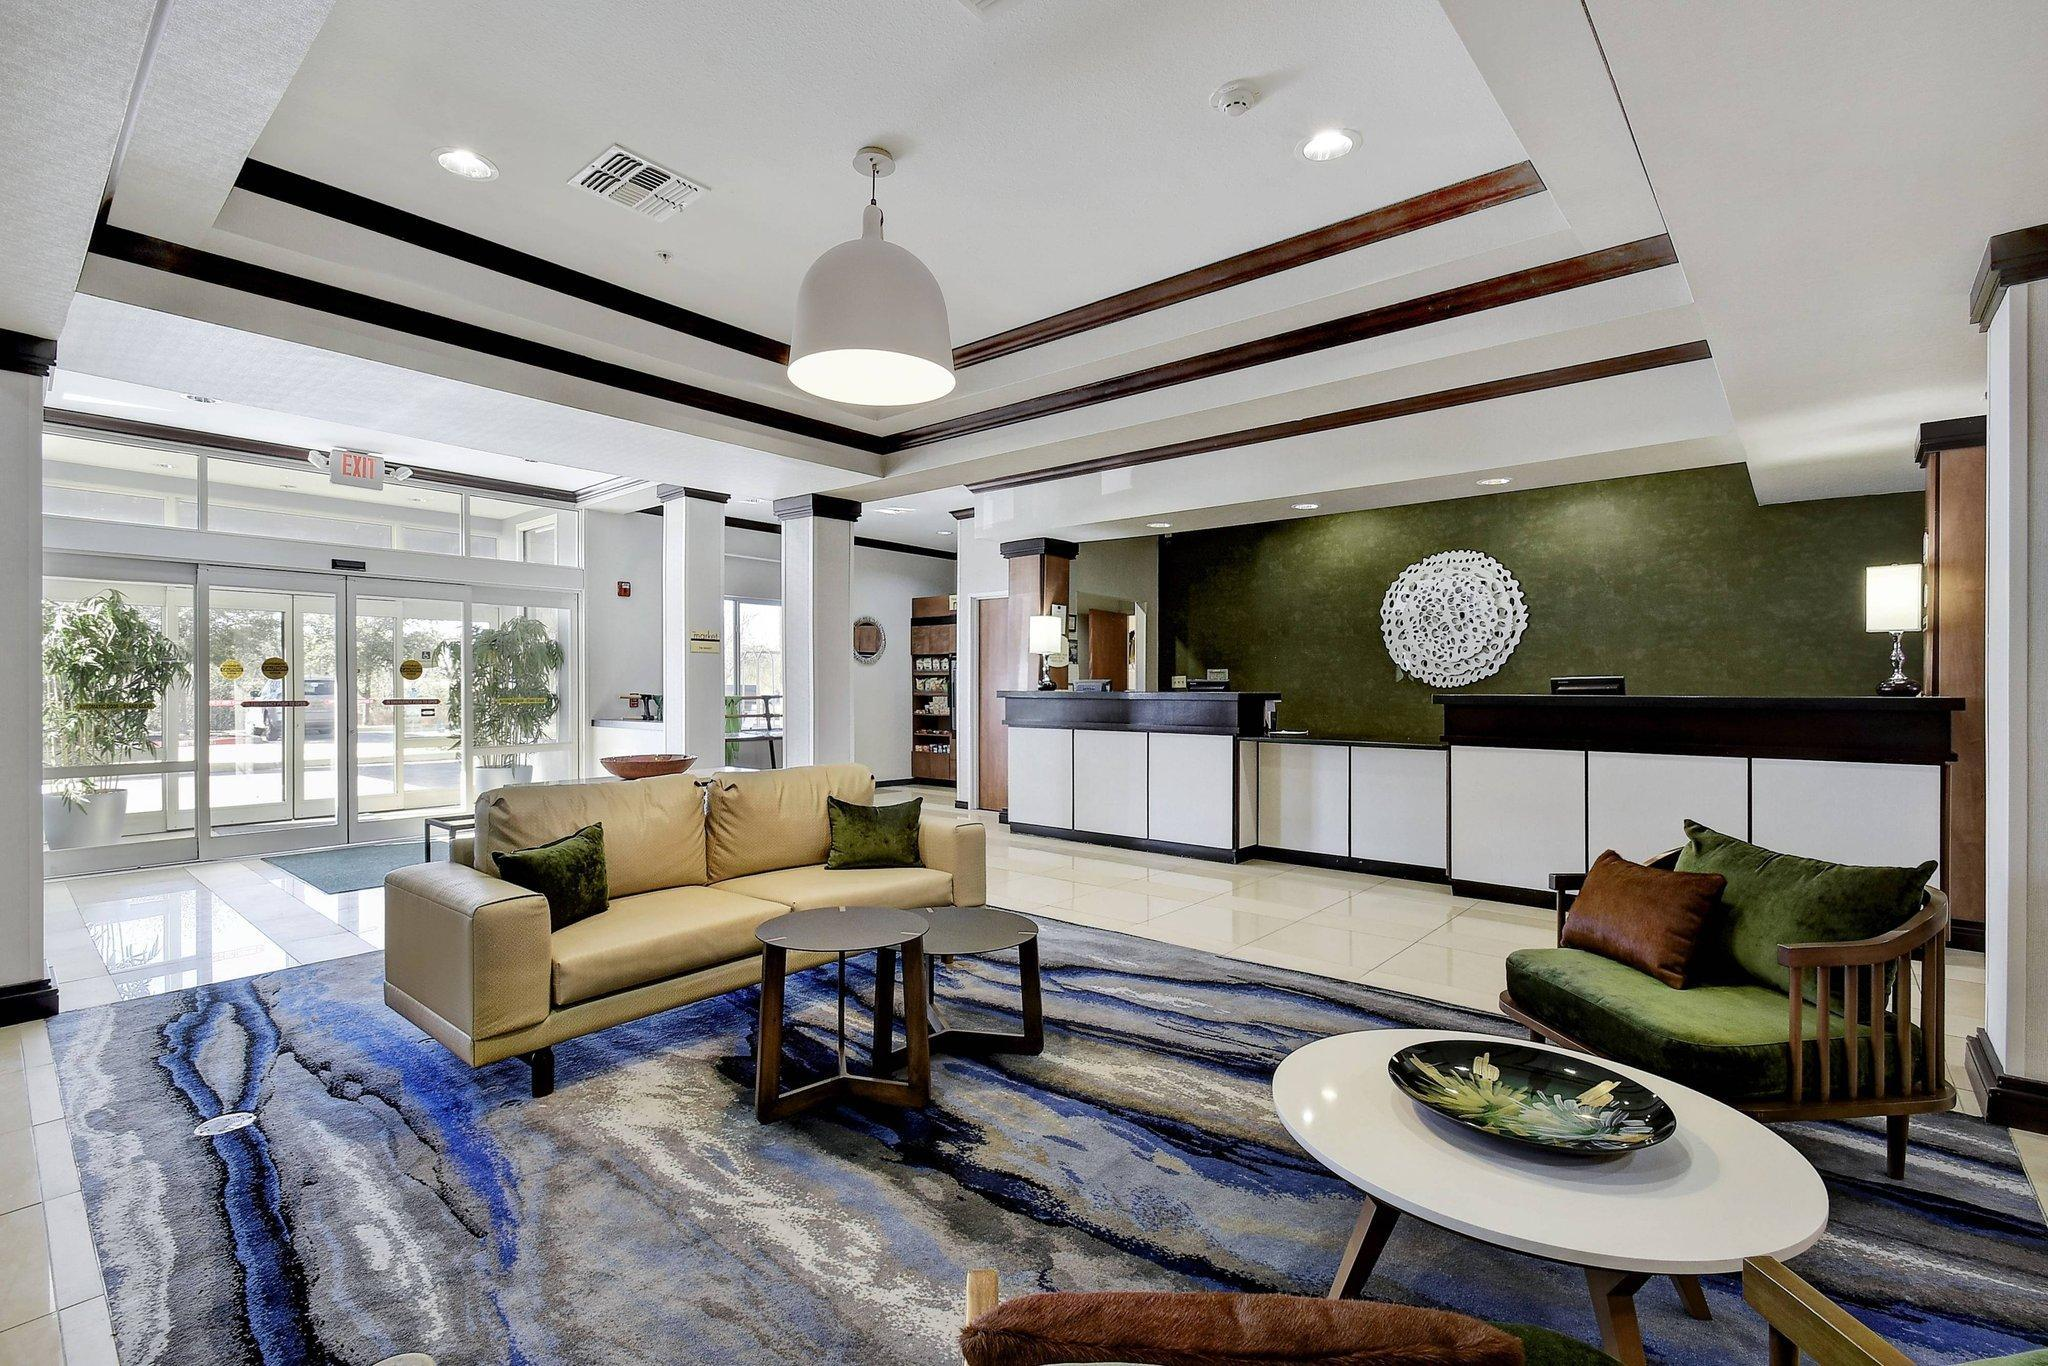 Fairfield Inn And Suites San Antonio Boerne